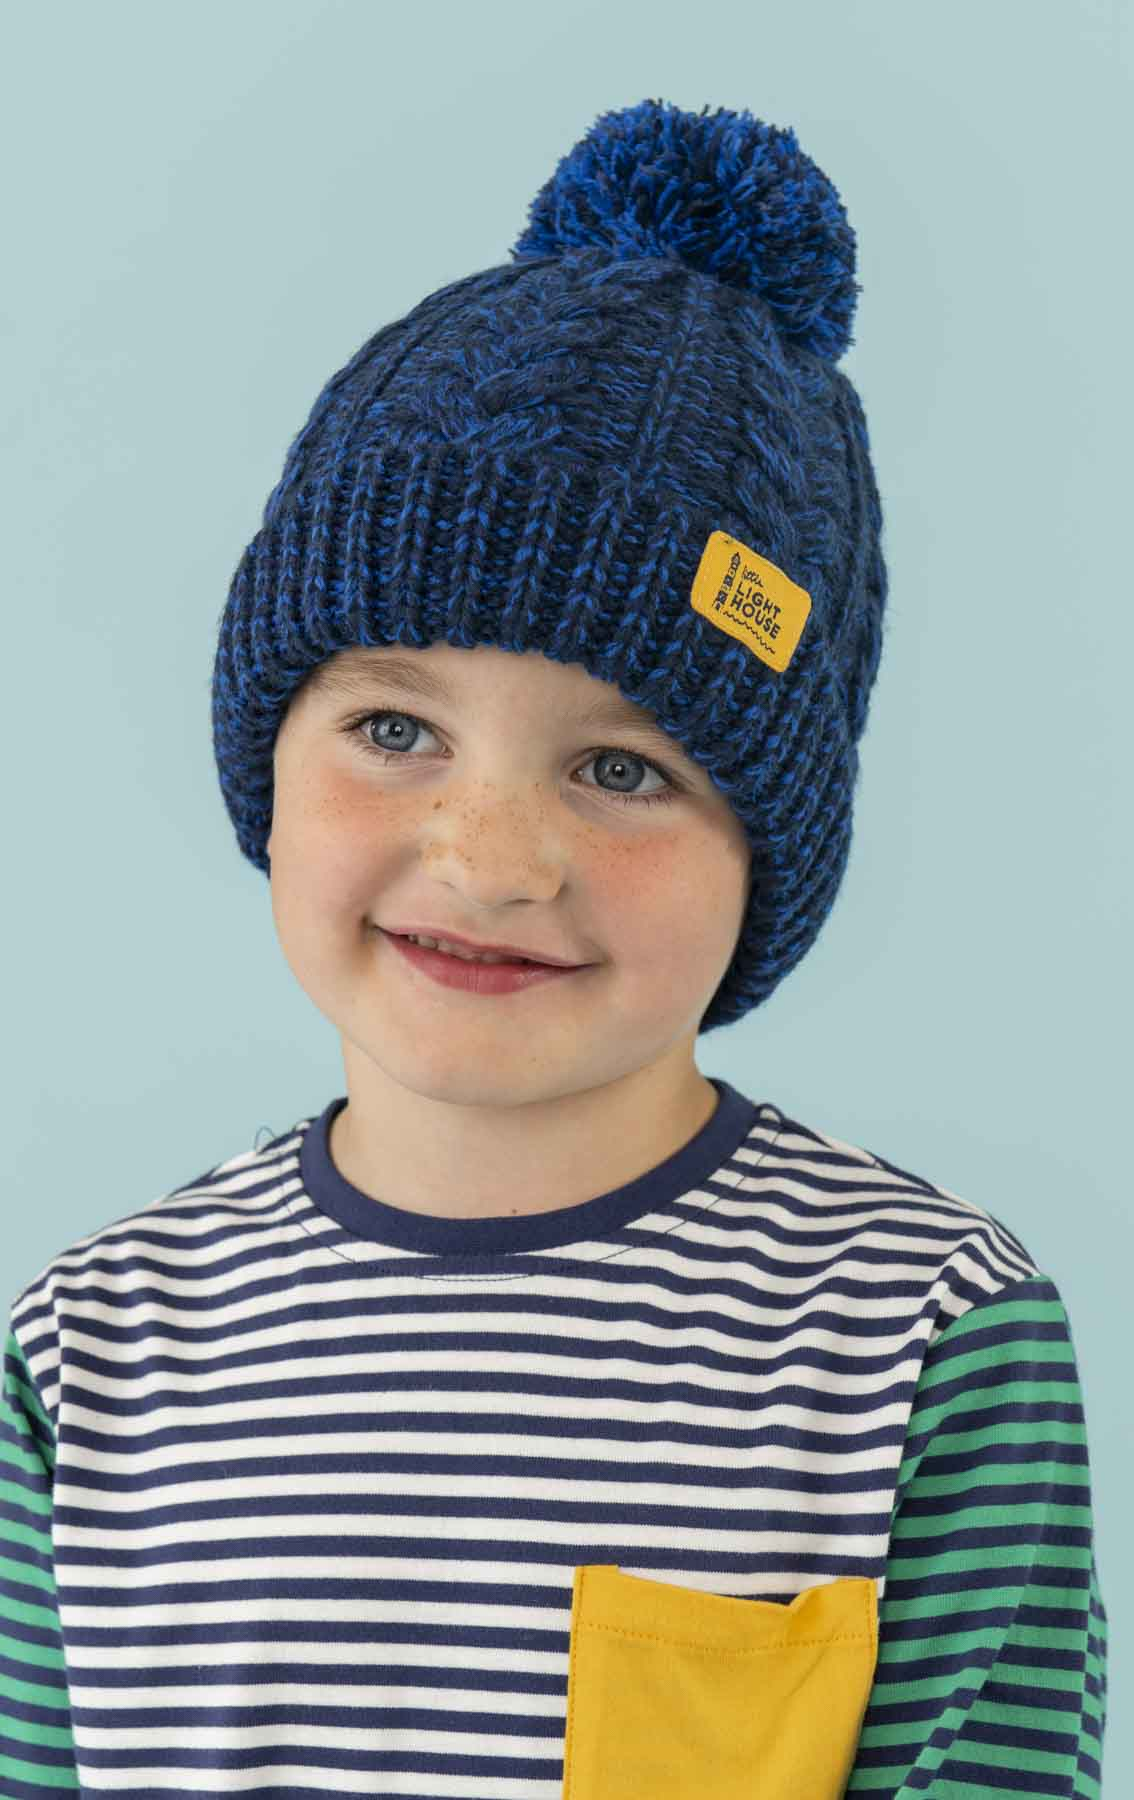 ff5552f36f4 Bobbie Bobble Hat. Boy s Cable Knit Hat